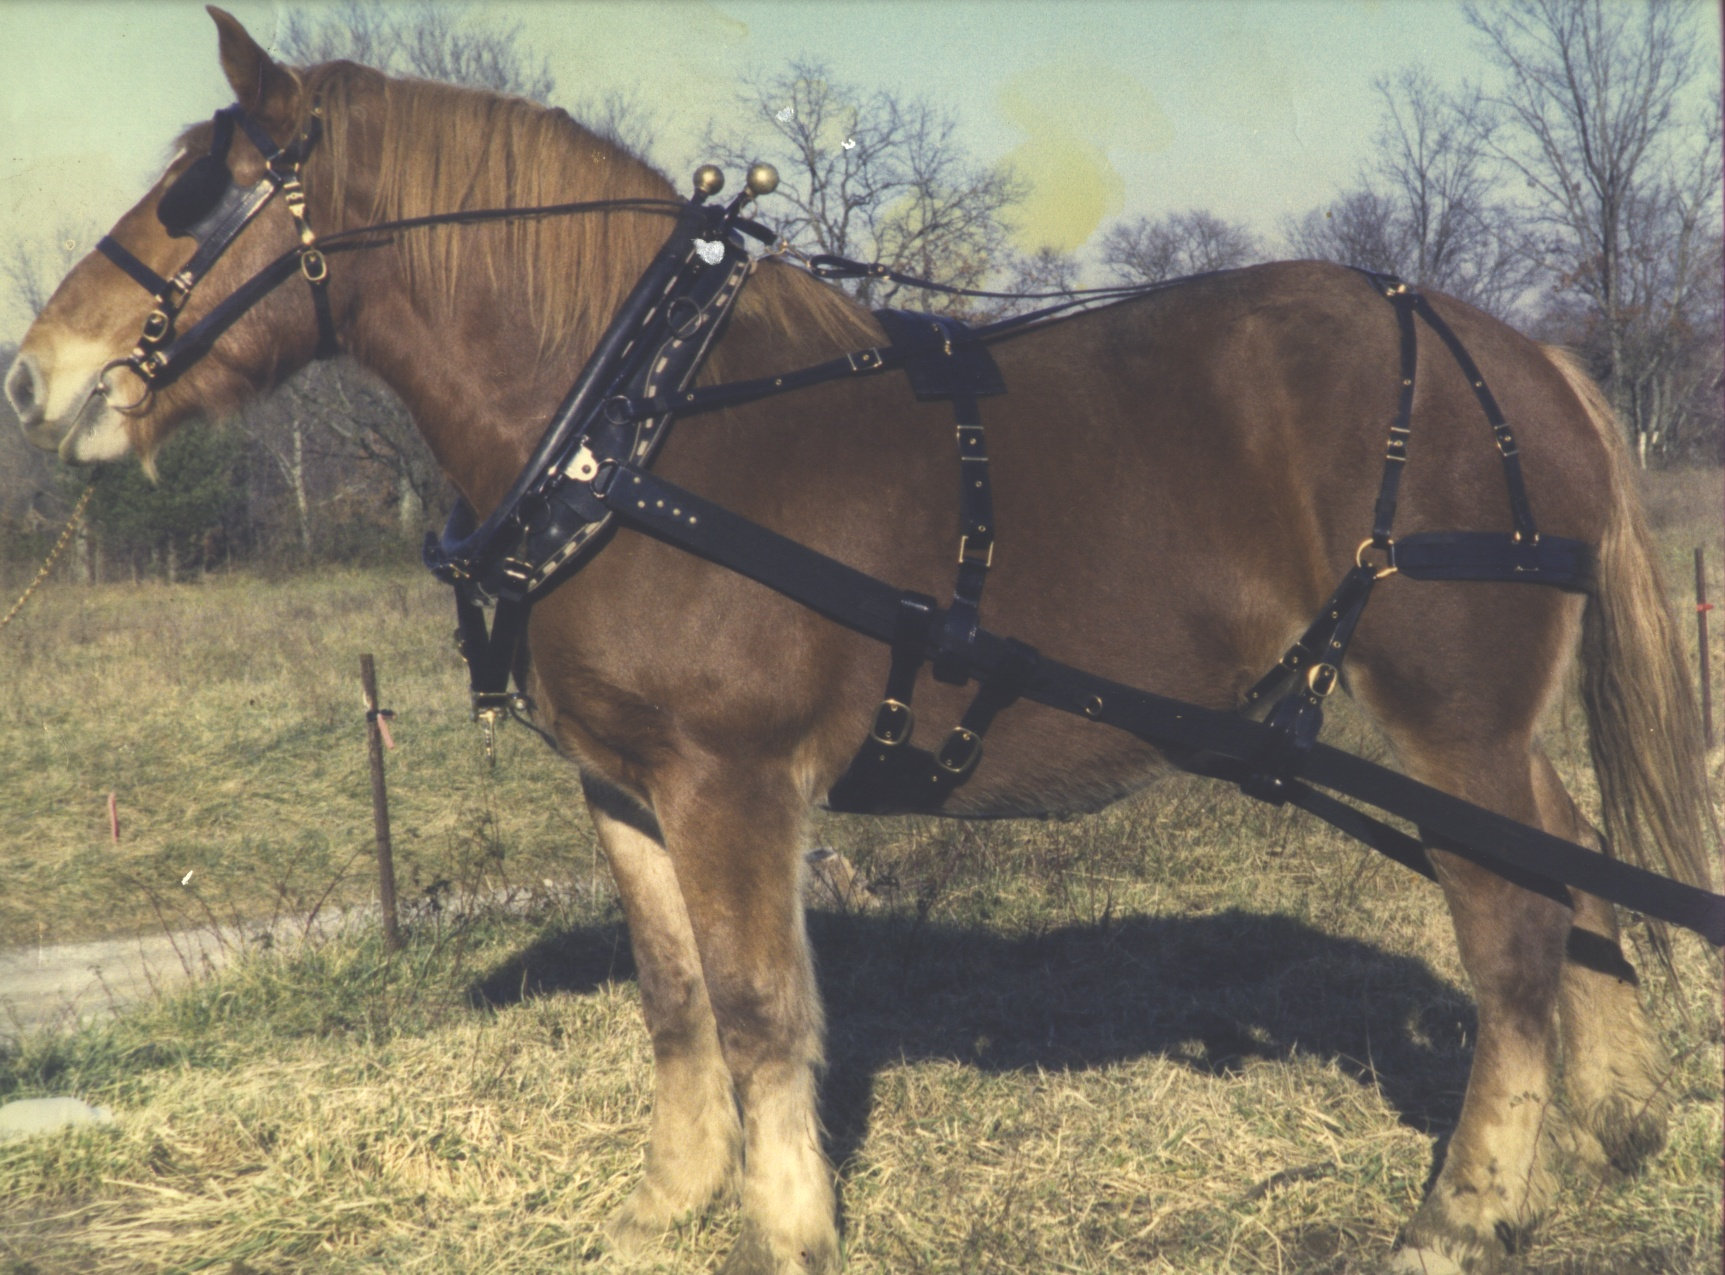 plow horse harness